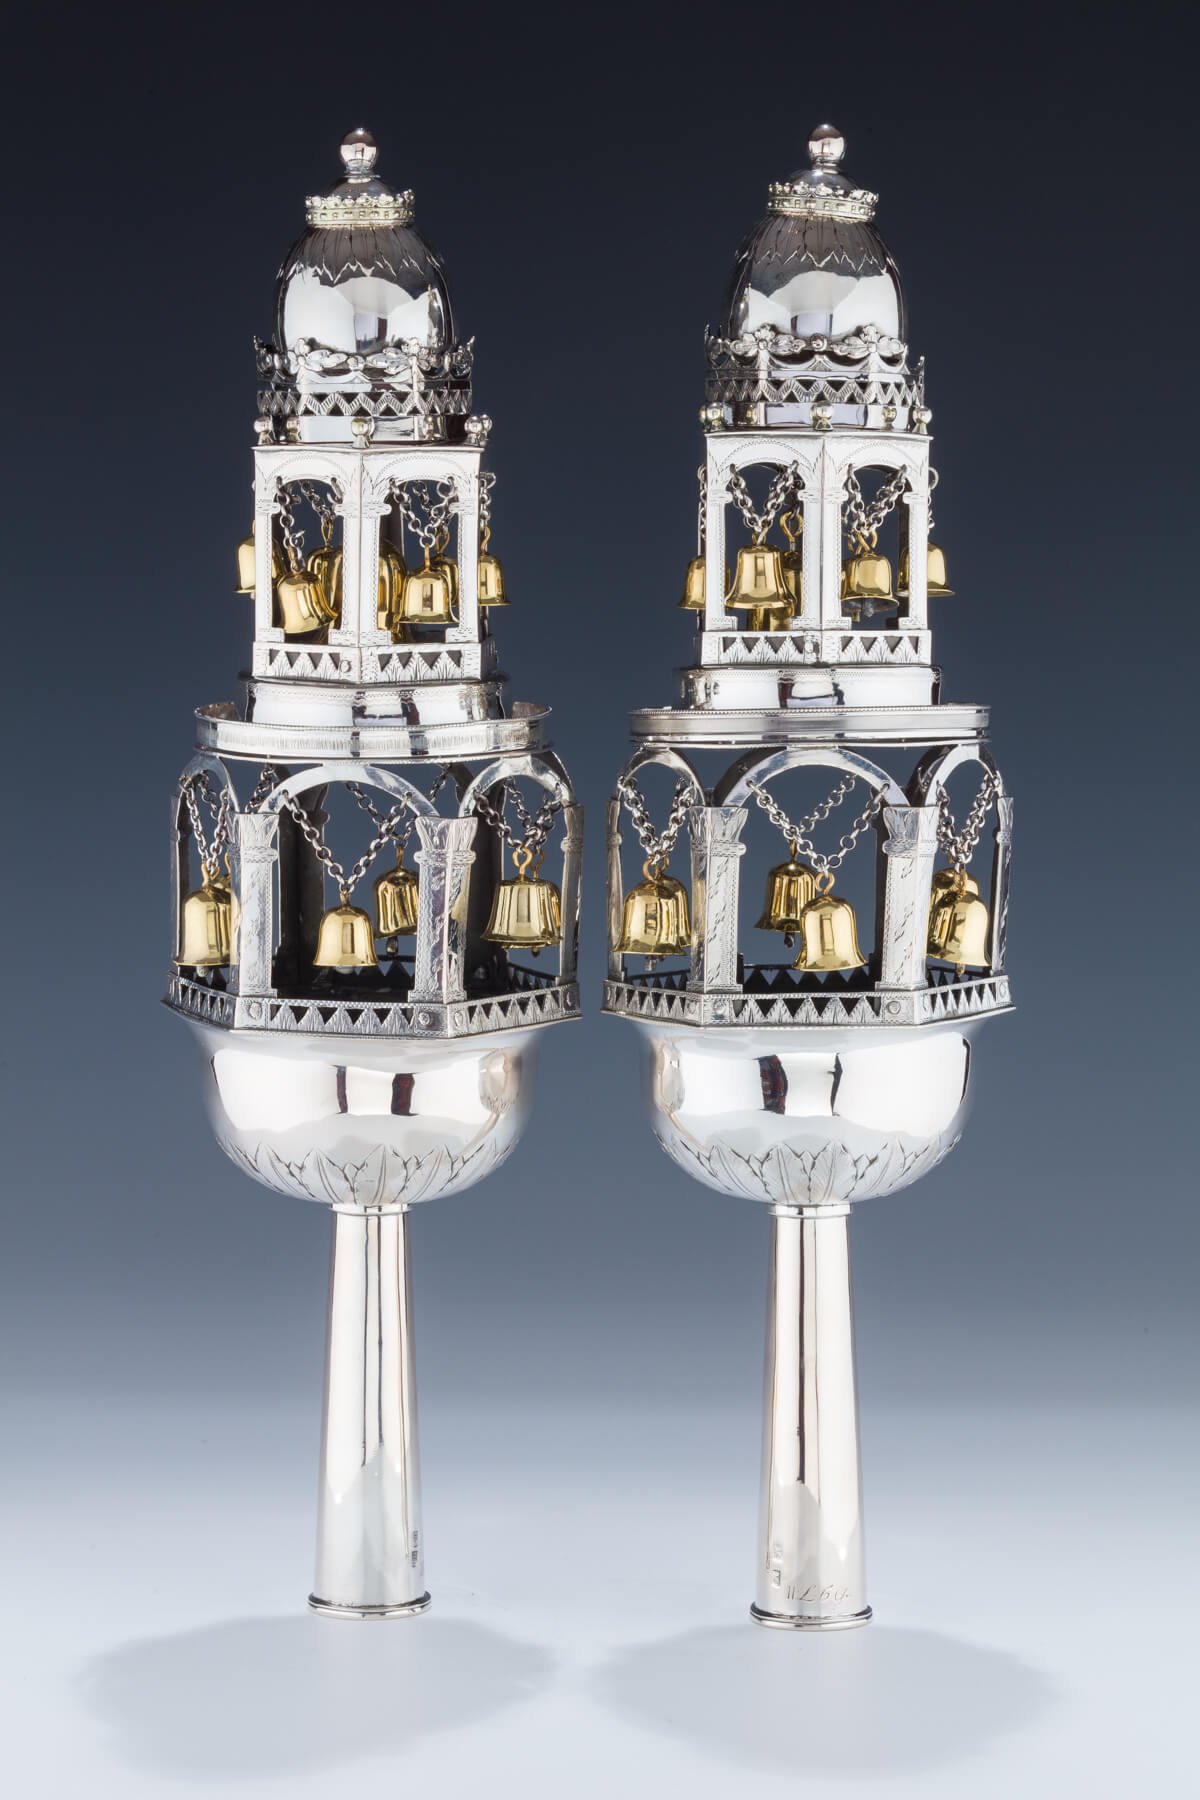 140. An Exceptionally Large Pair of Silver Torah Finials